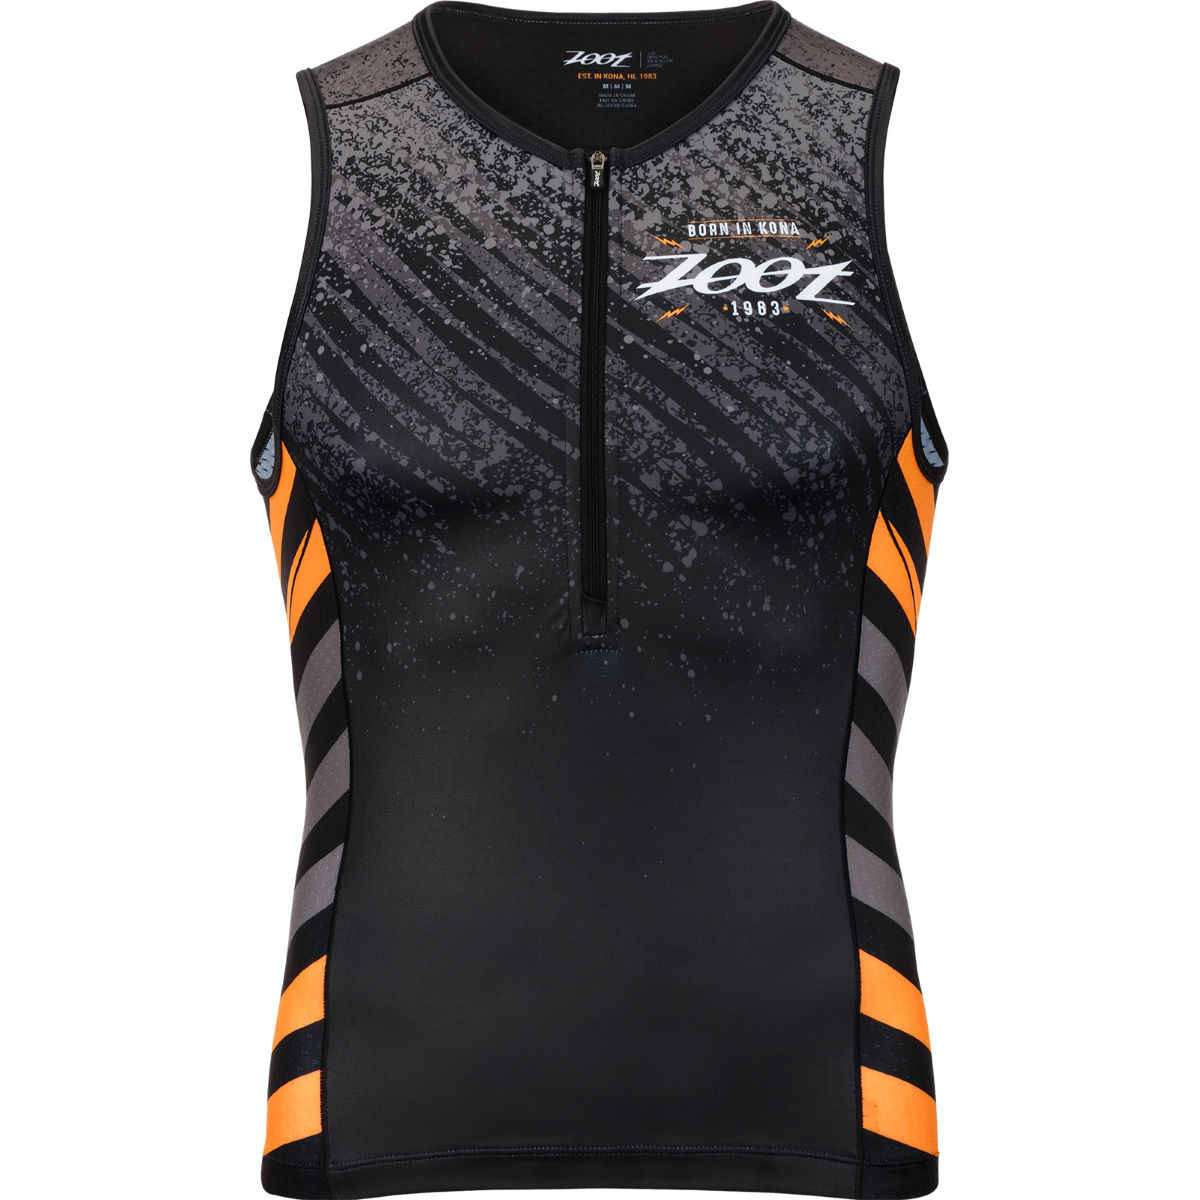 Image of Débardeur de triathlon Zoot Aloha LTD - S Noir/Orange